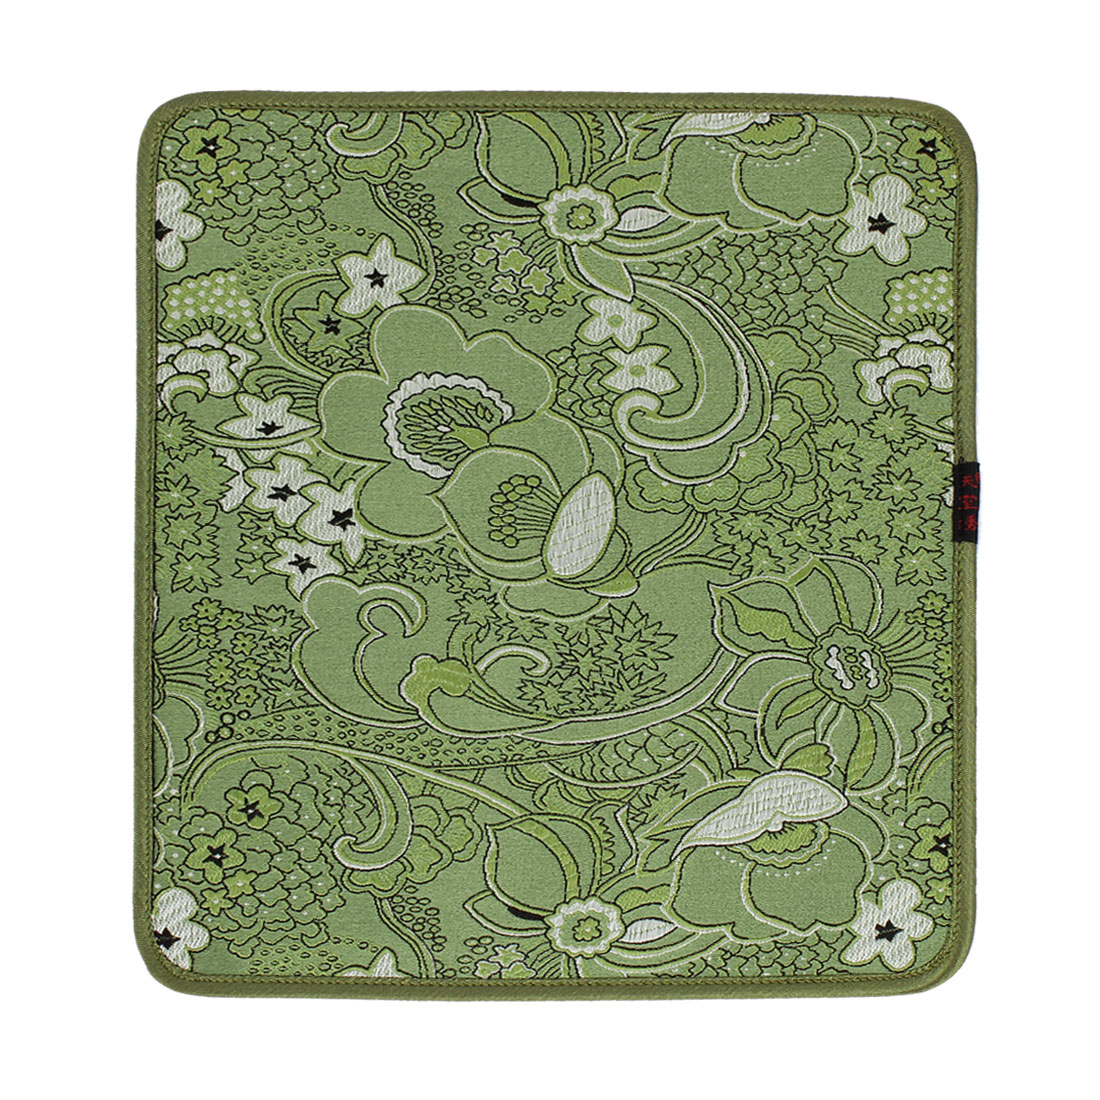 24cm x 21cm Light Green Nonslip Silicone Desktop Computer Mouse Pad Mat